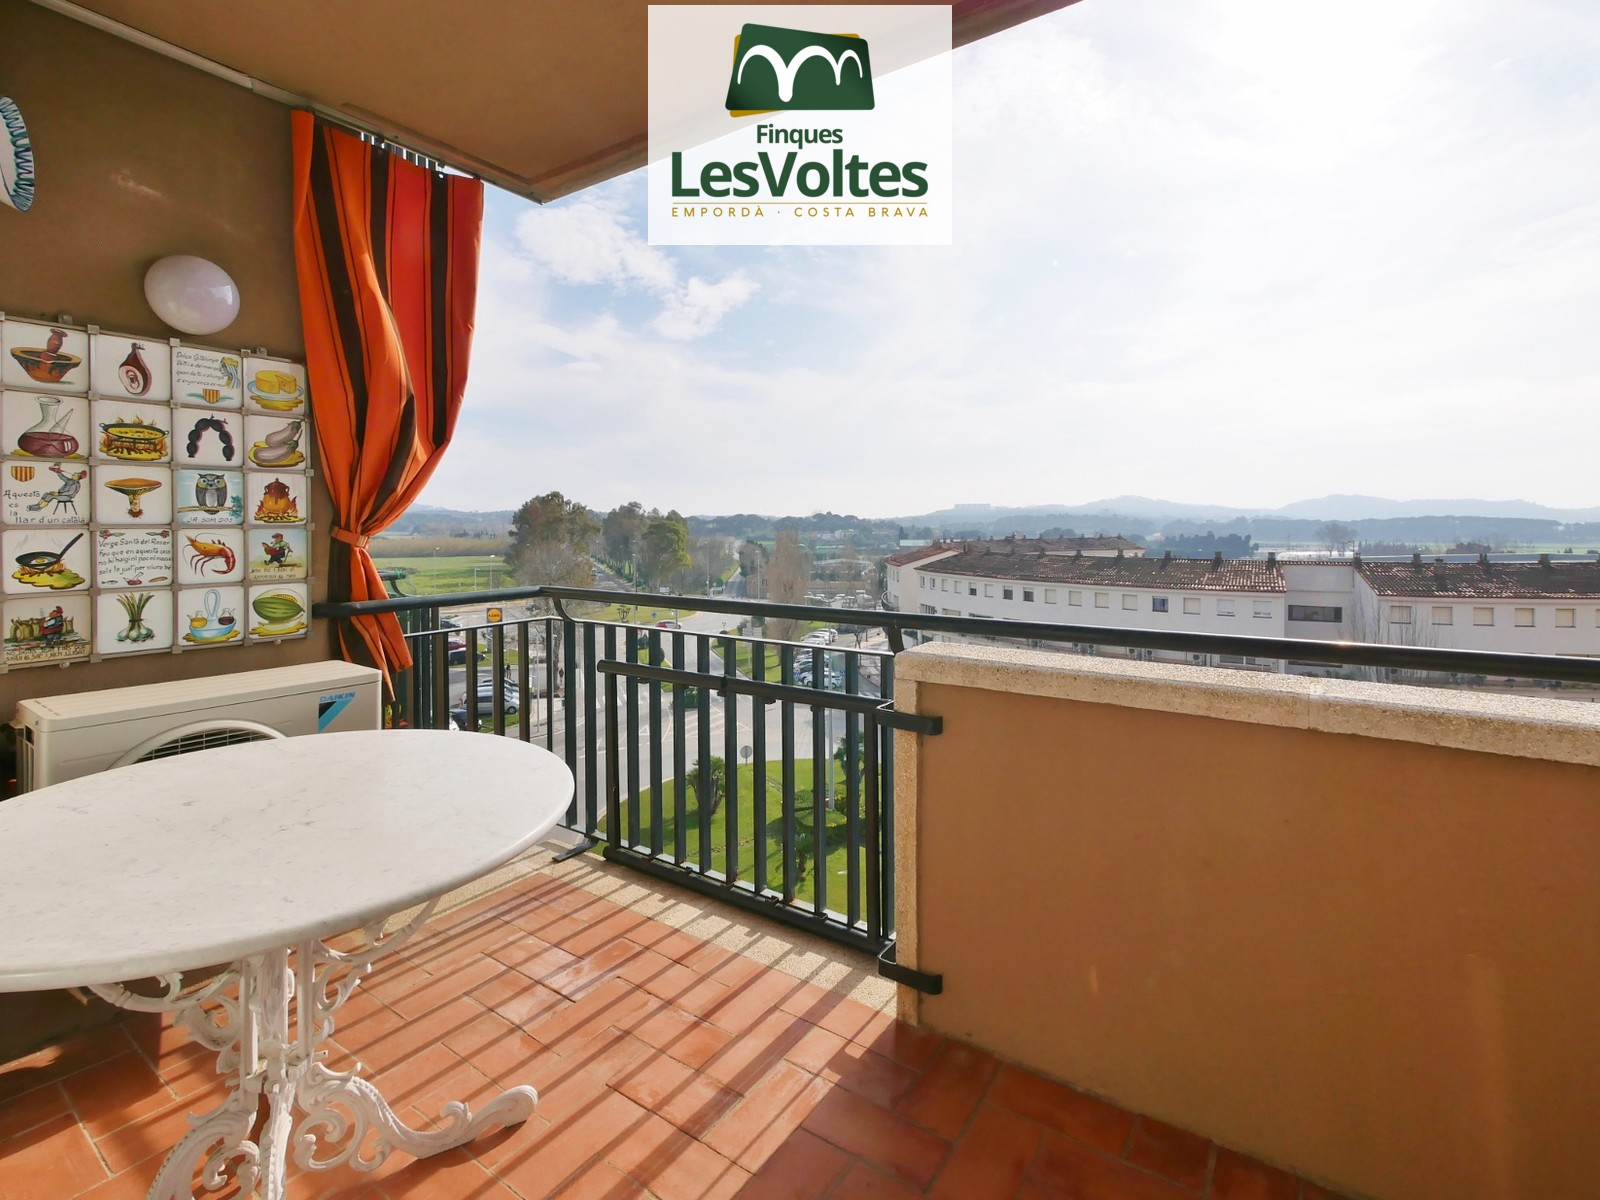 3 bedroom apartment for rent in Palafrugell. Community with elevator.